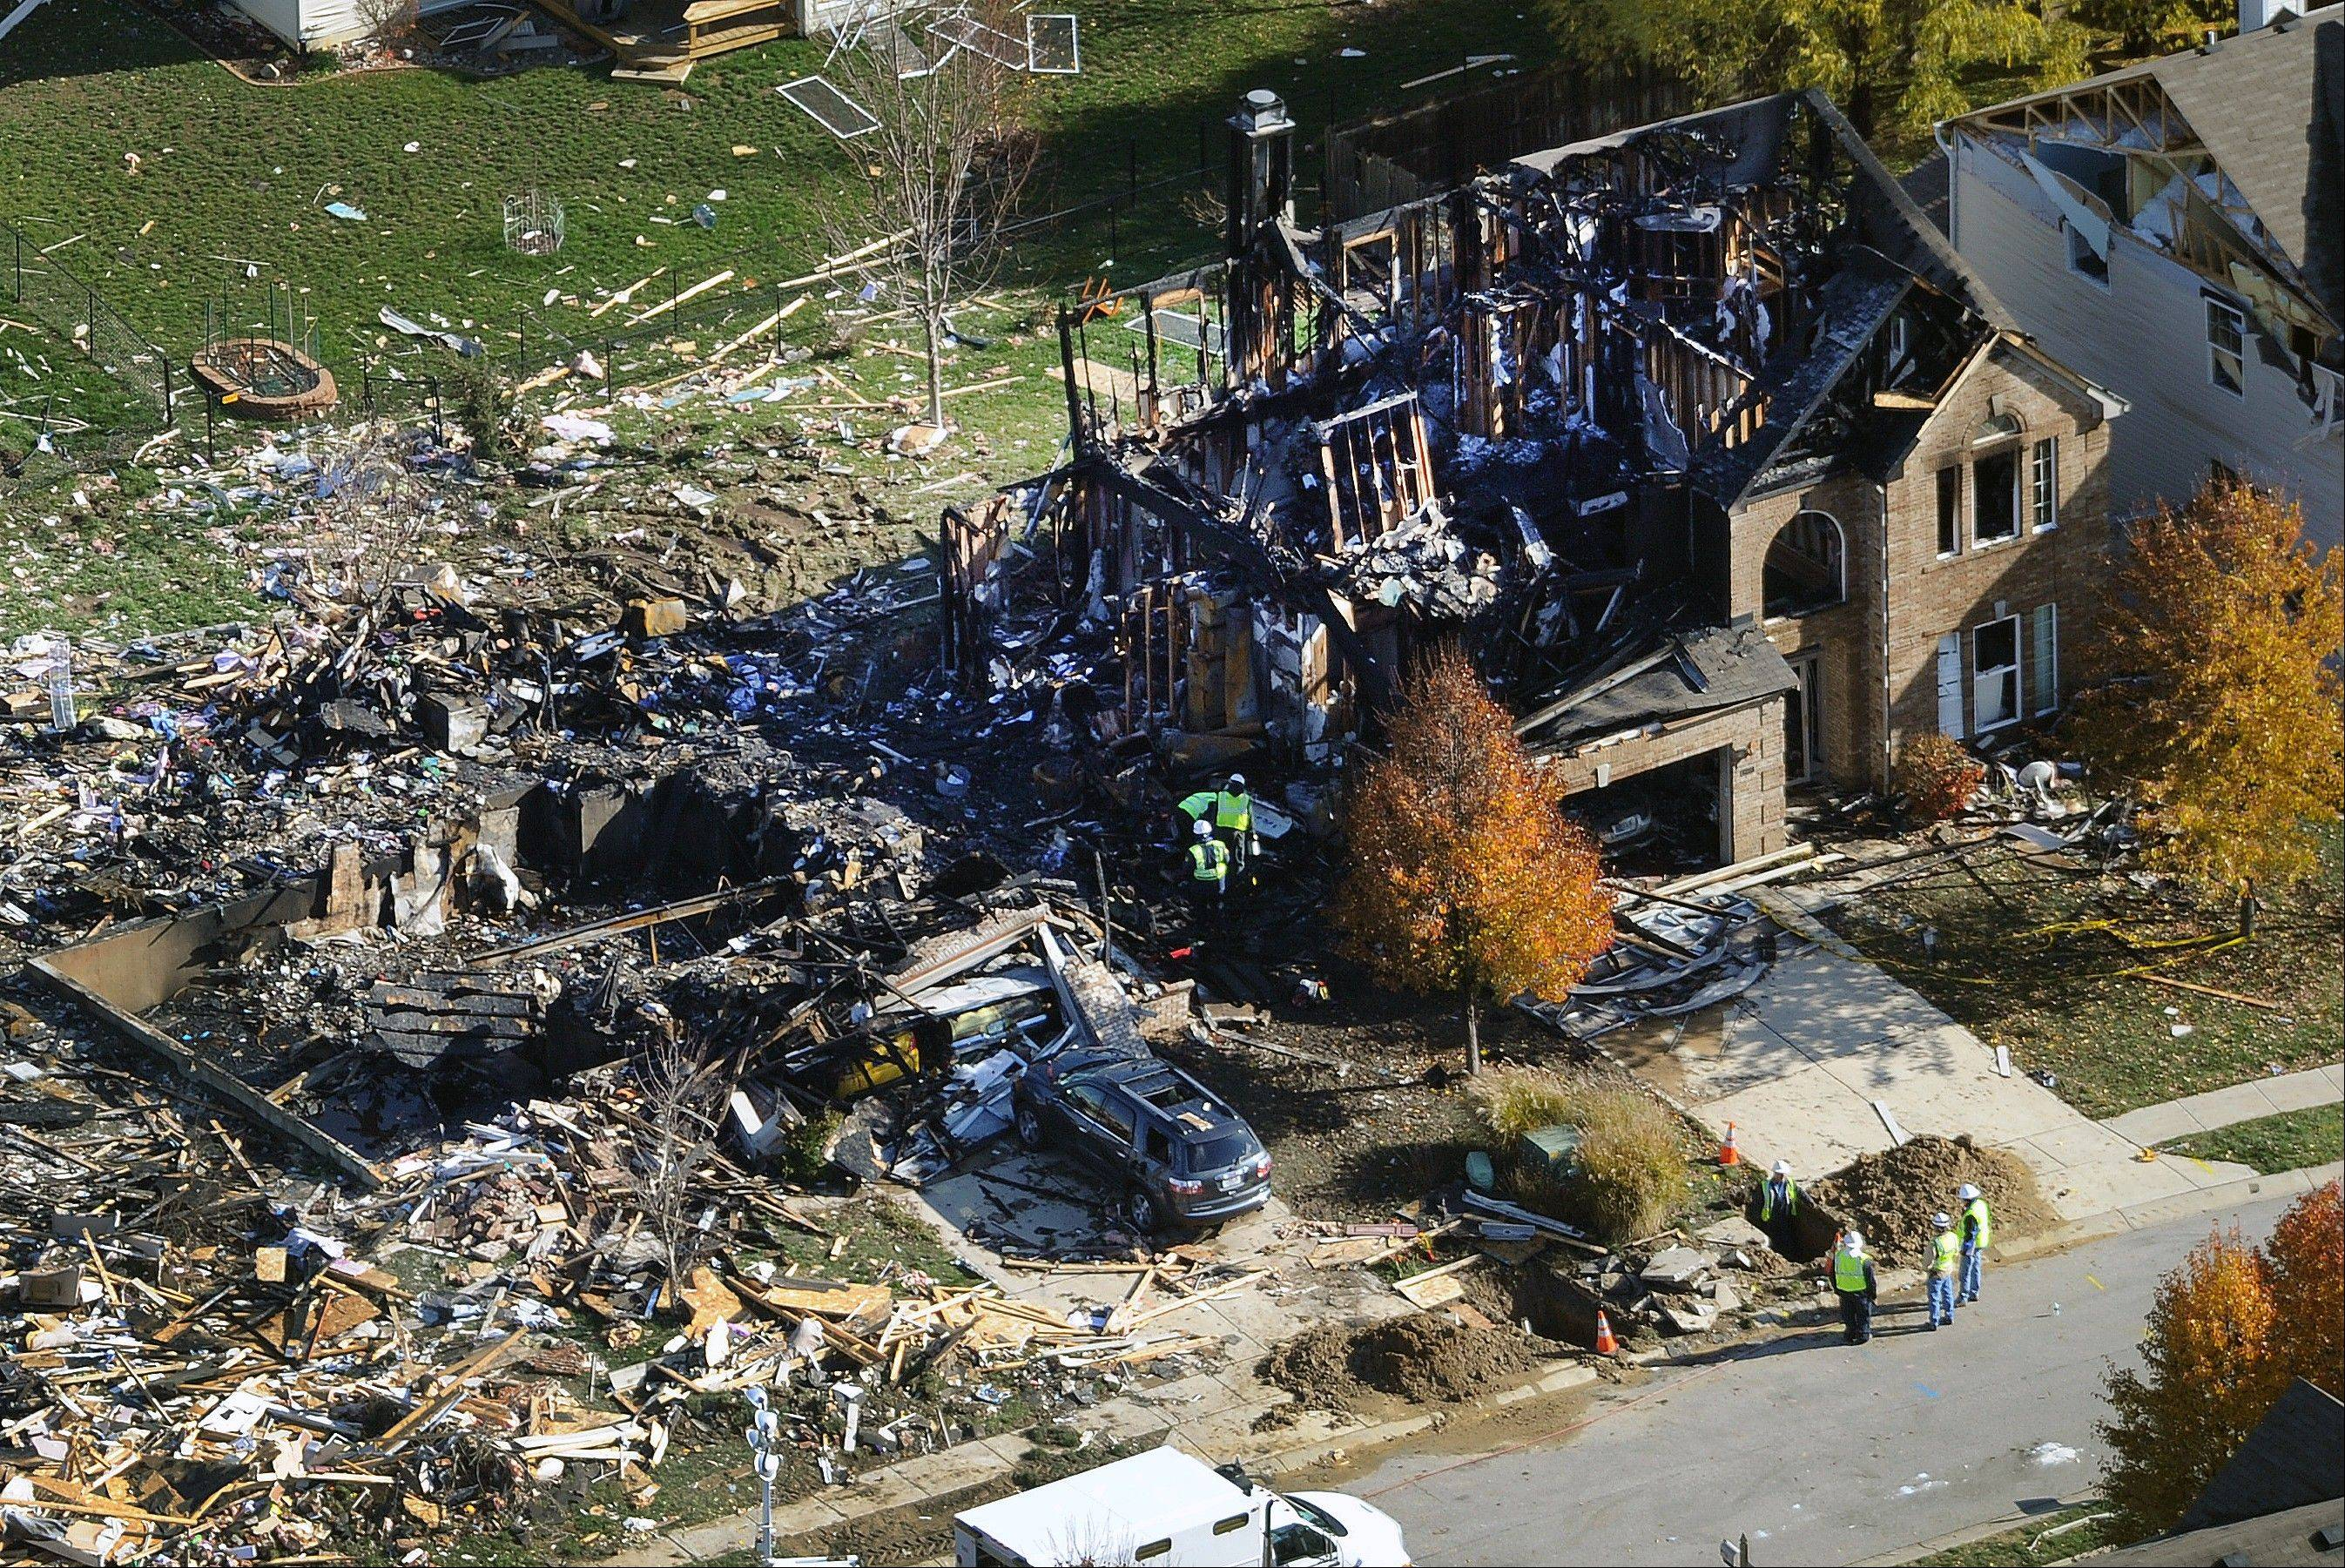 Concerns about furnace fuel Indiana blast probe